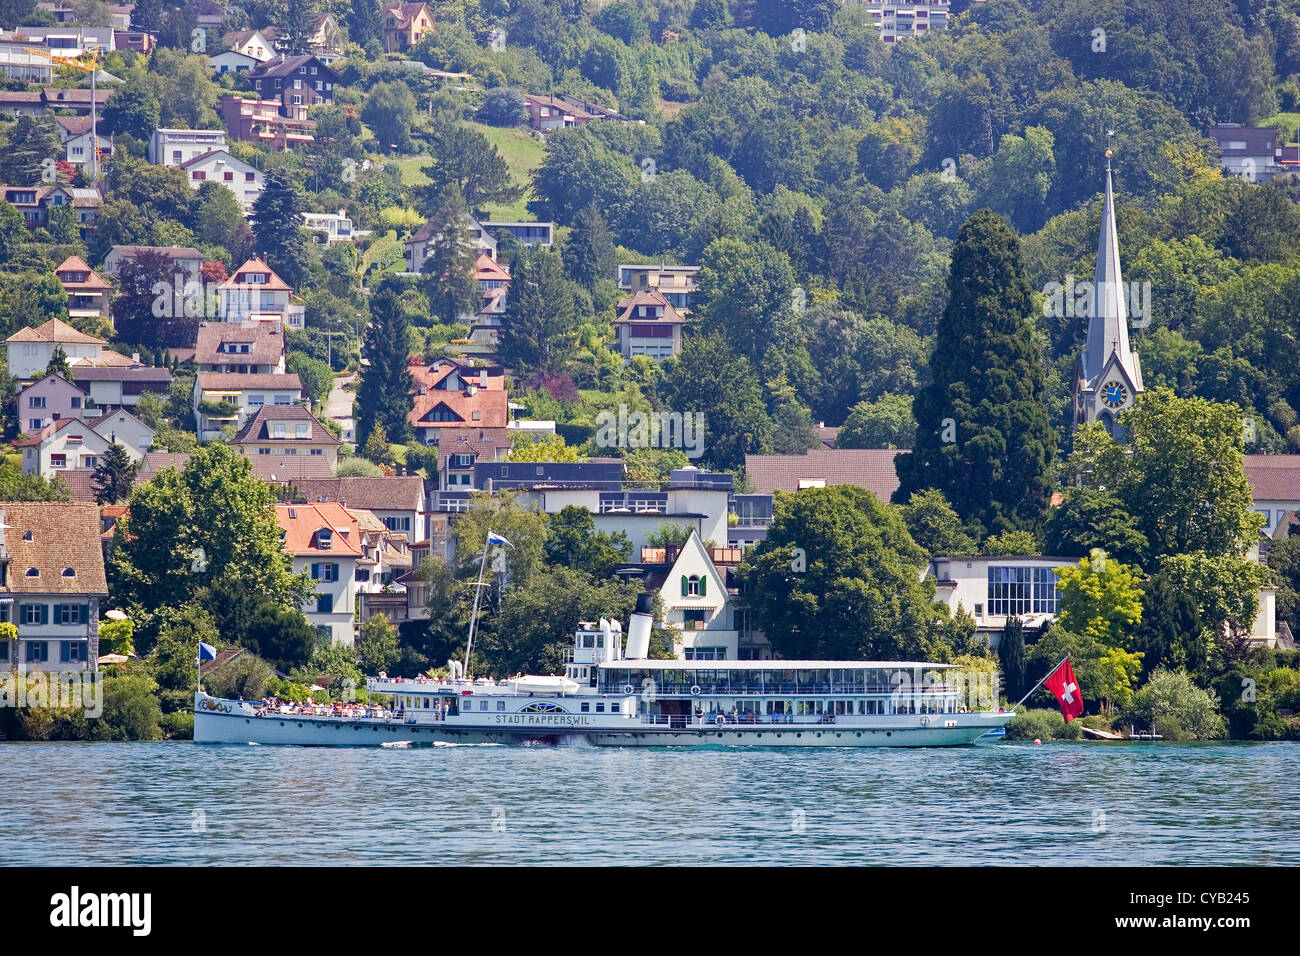 europe, switzerland, zurich, lake of zurich, touristic boat - Stock Image